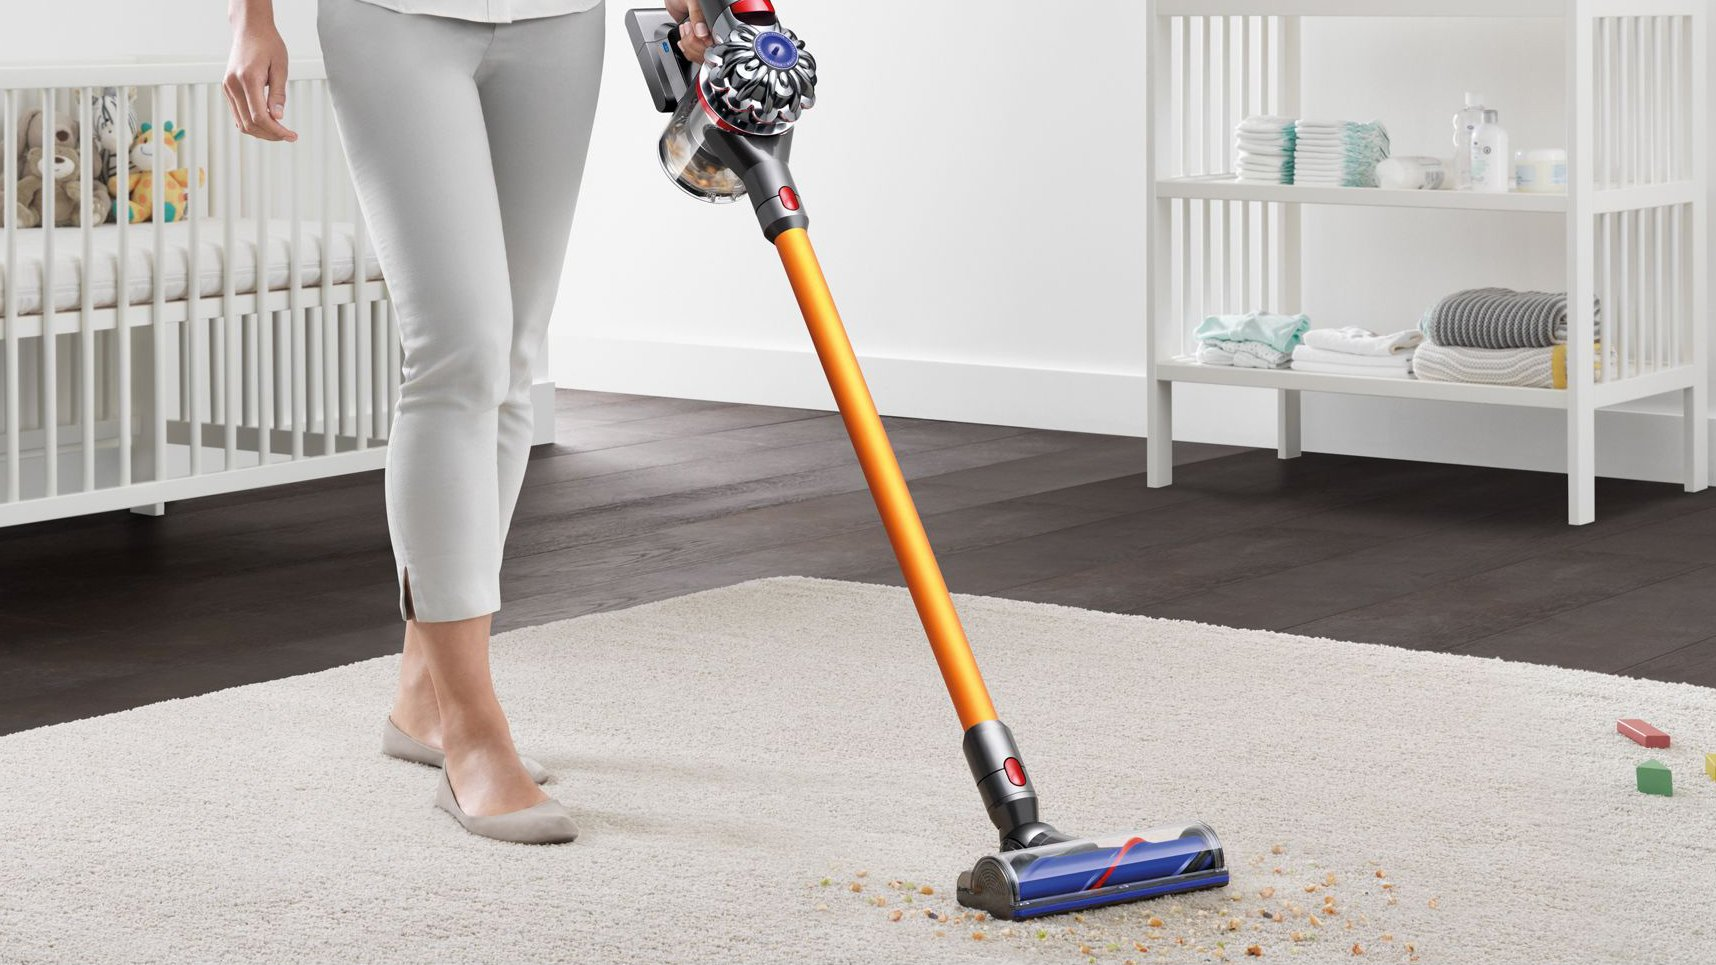 Best Dyson deals: Black Friday offers on Dyson products